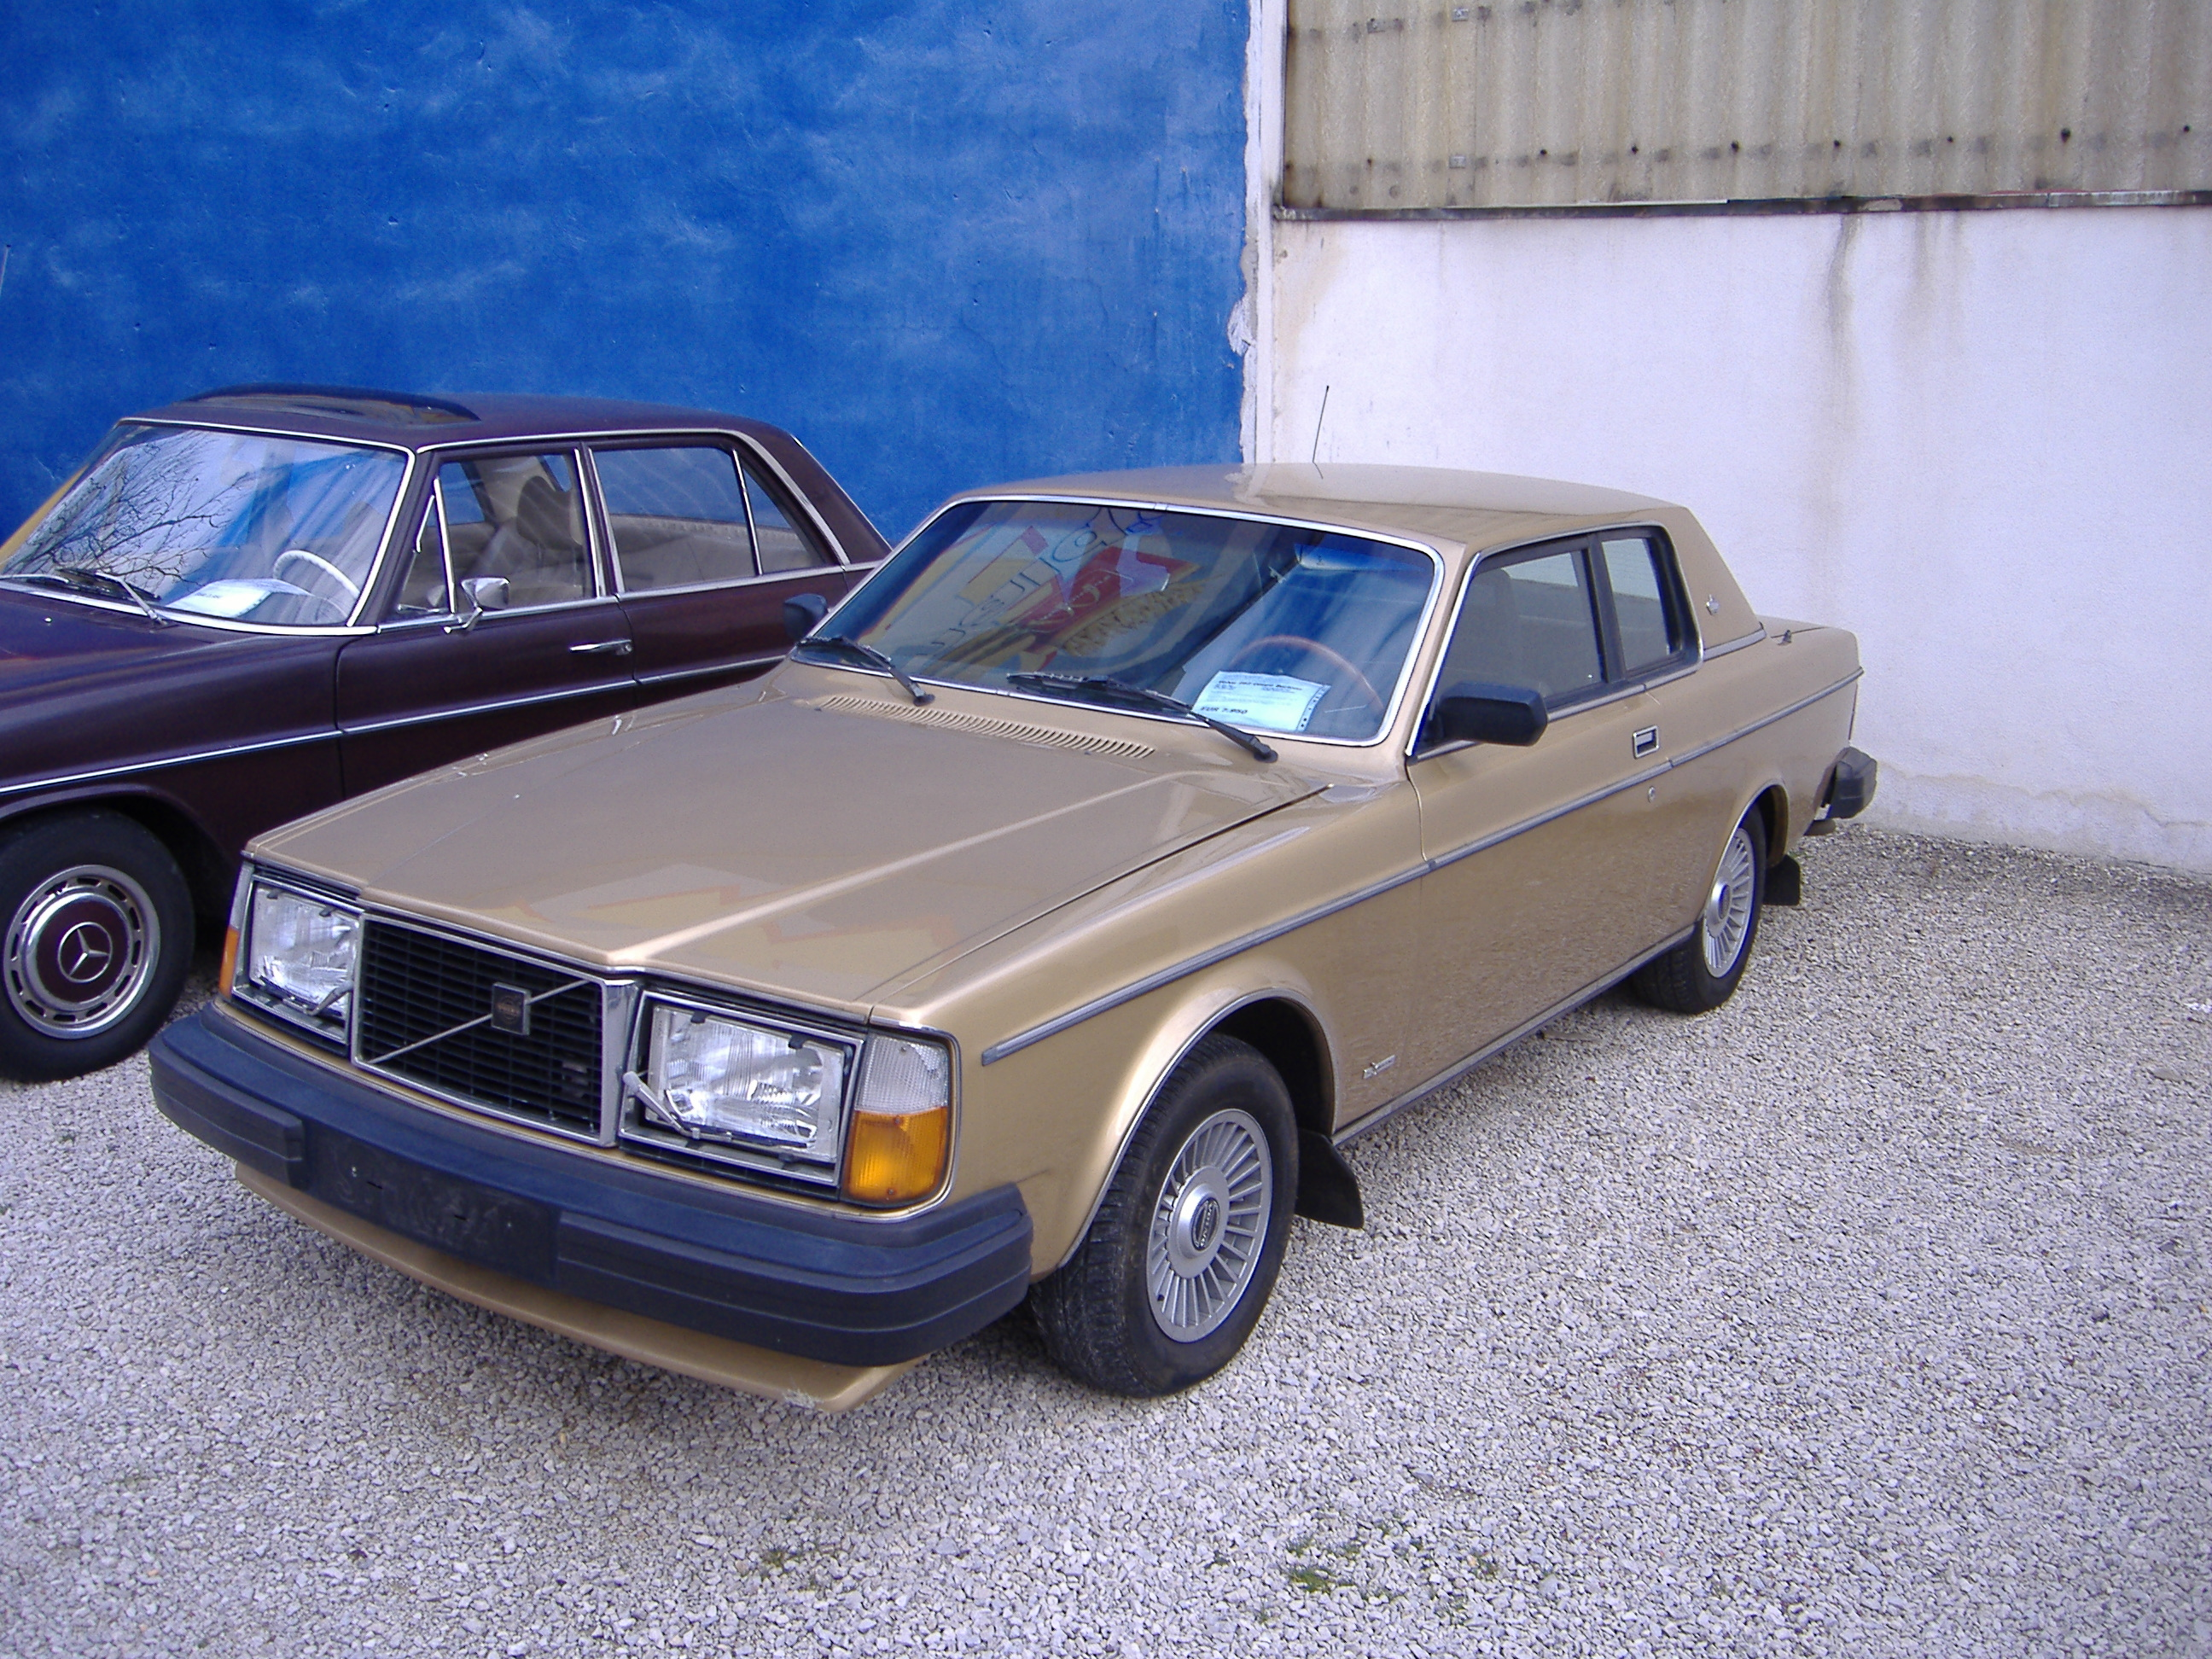 mechanin cars volvo en image mechanical gasoline used d car parts auto foto sedan